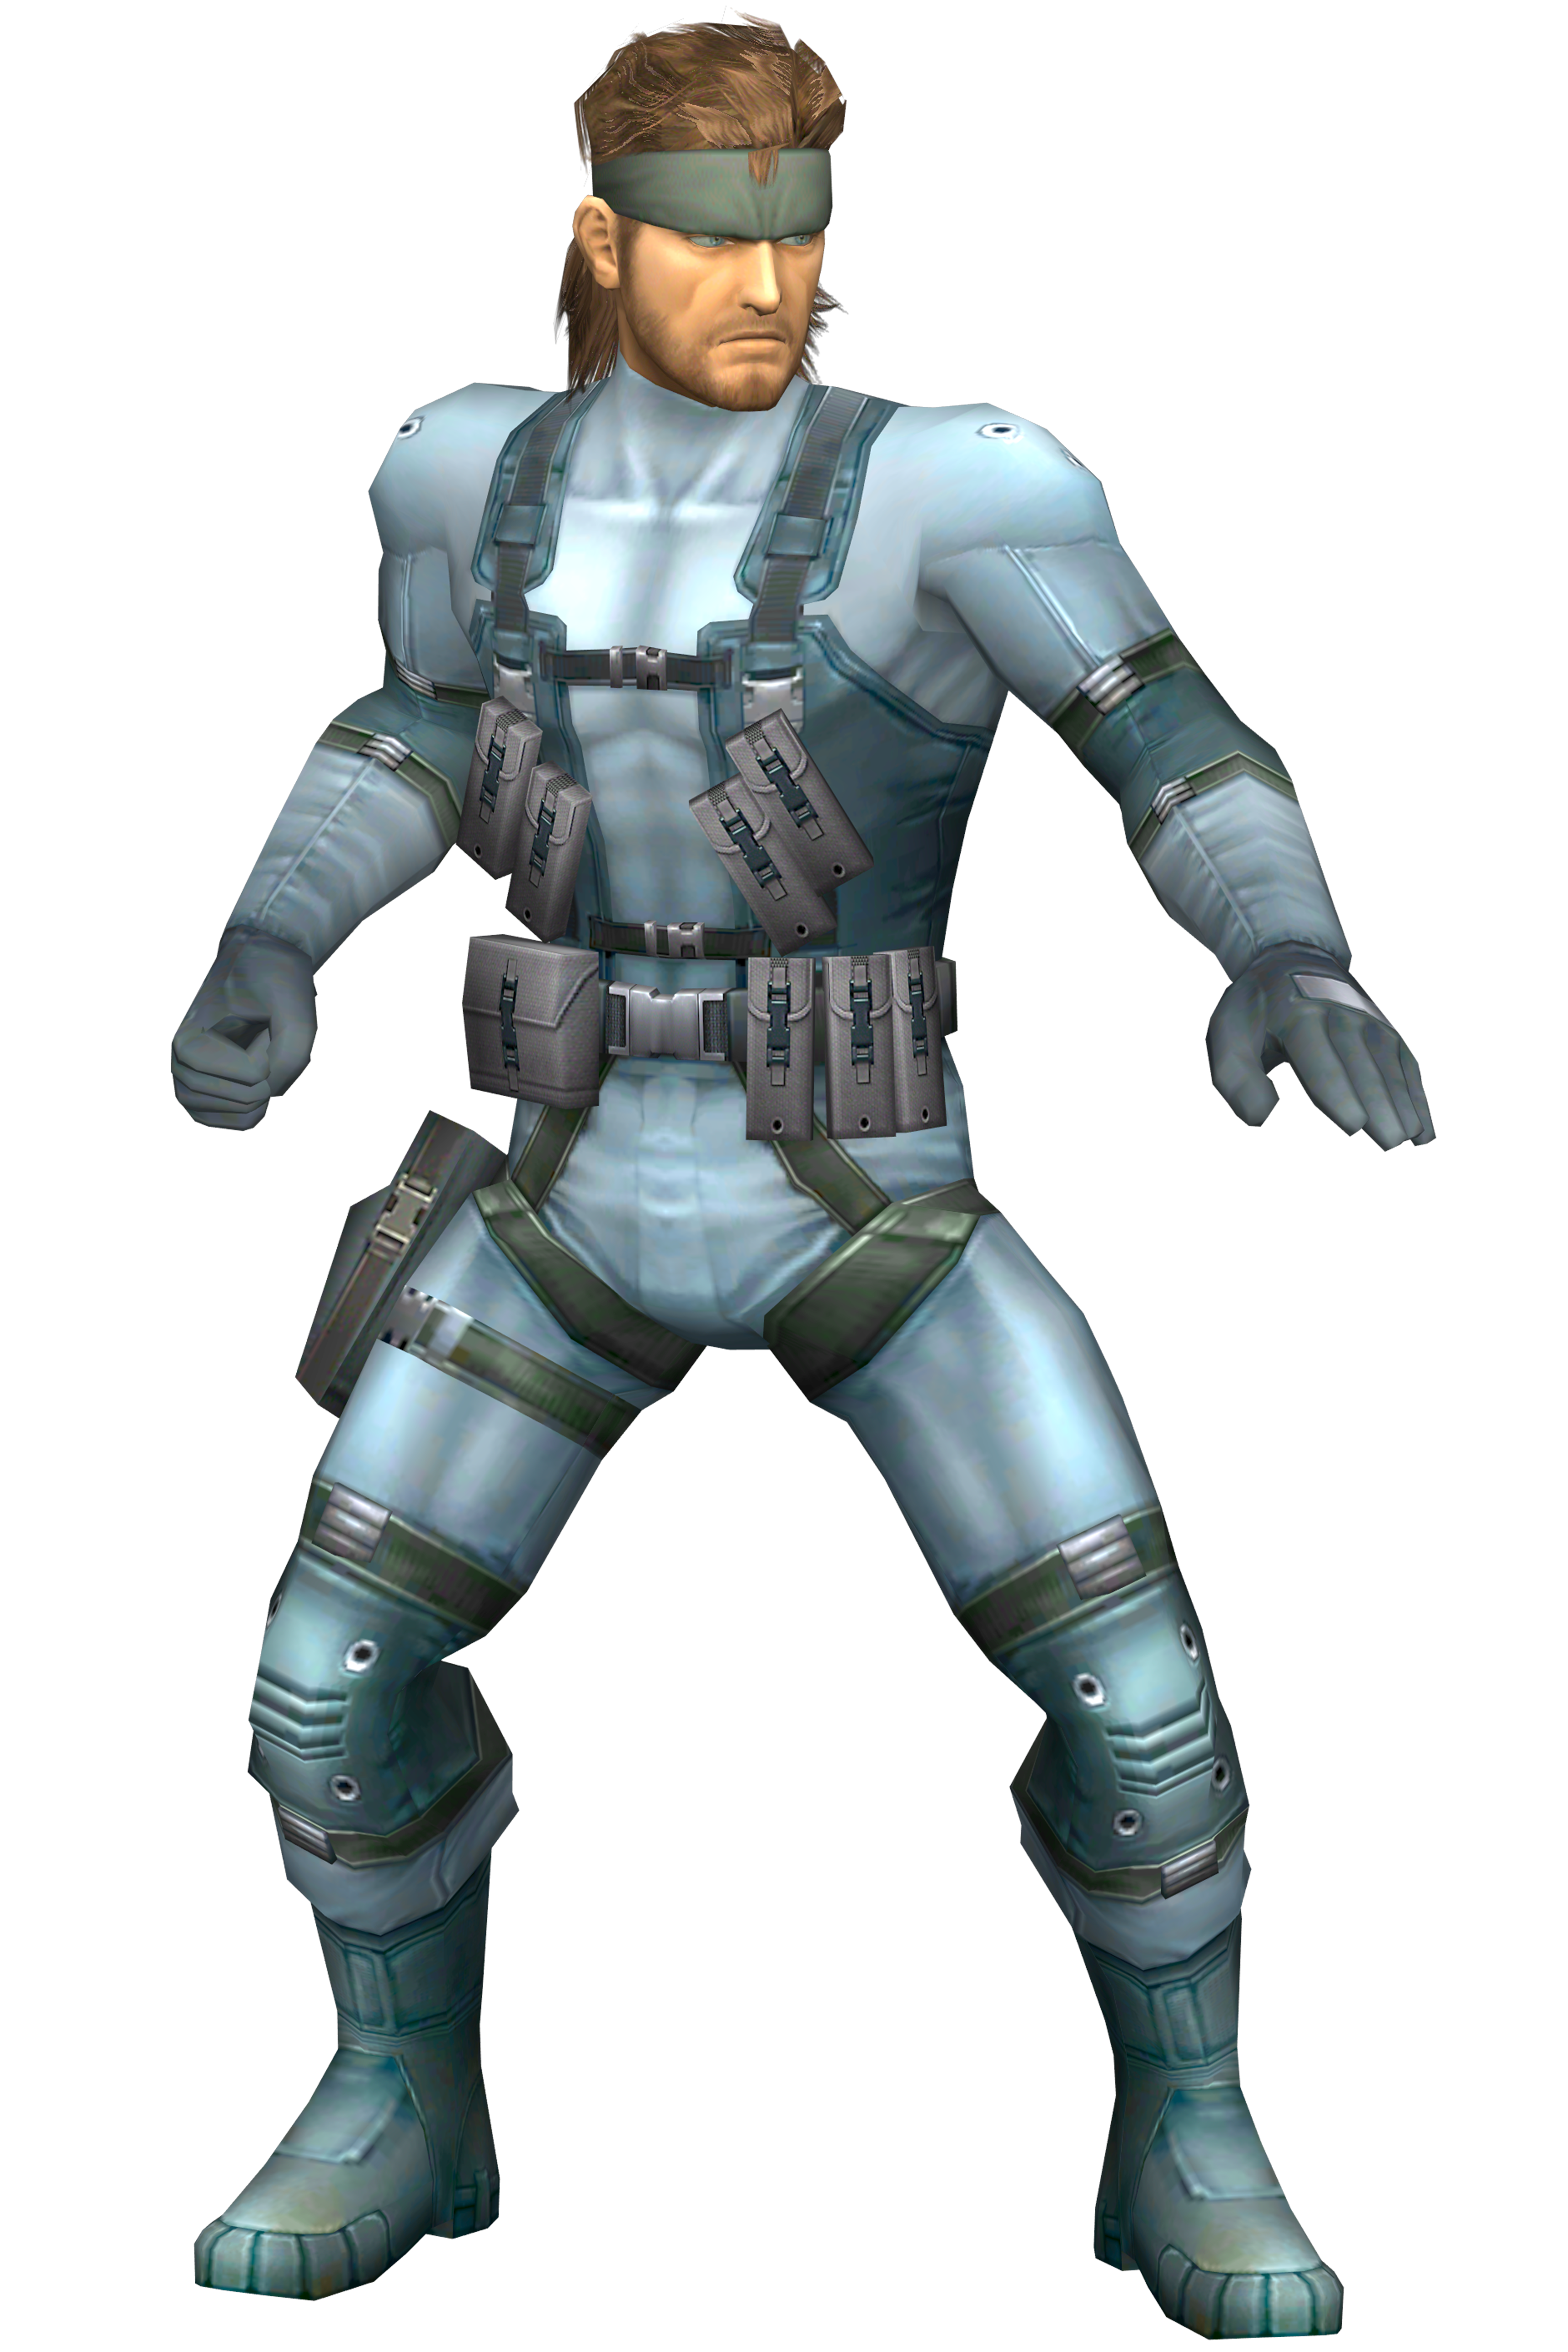 Solid Snake Wallpapers - Wallpaper Cave